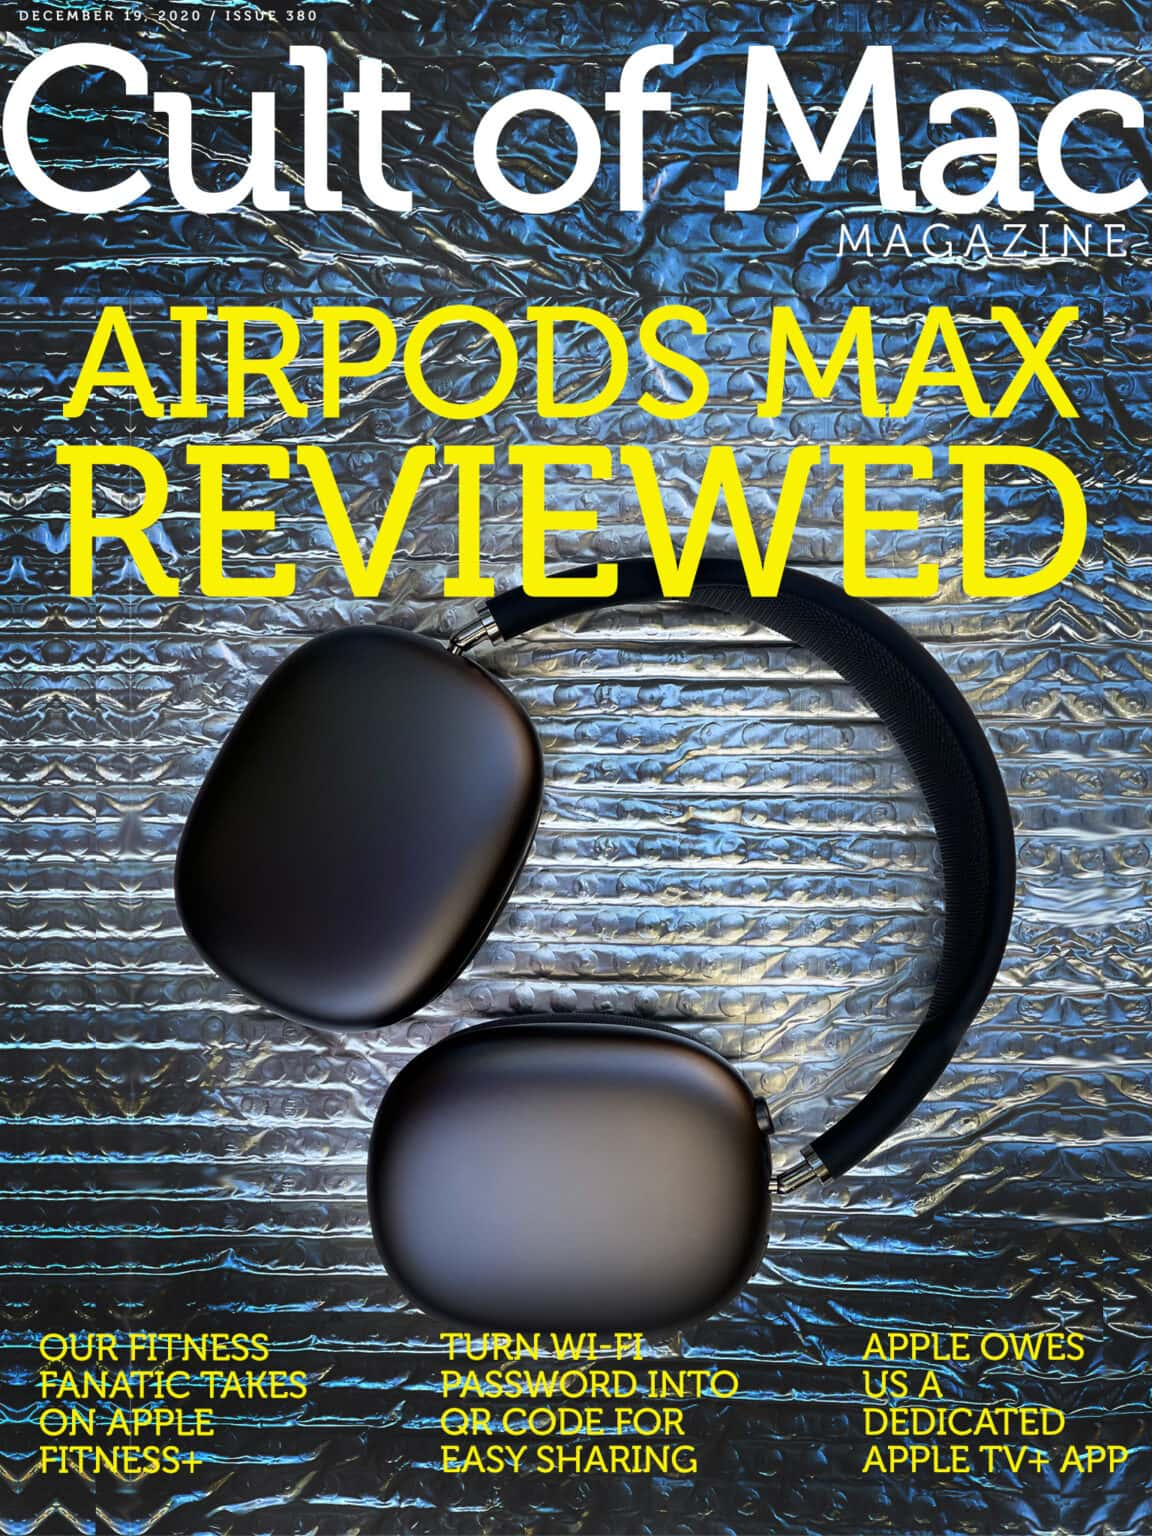 In-depth reviews of AirPods Max and Apple Fitness+ in Cult of Mac Magazine.